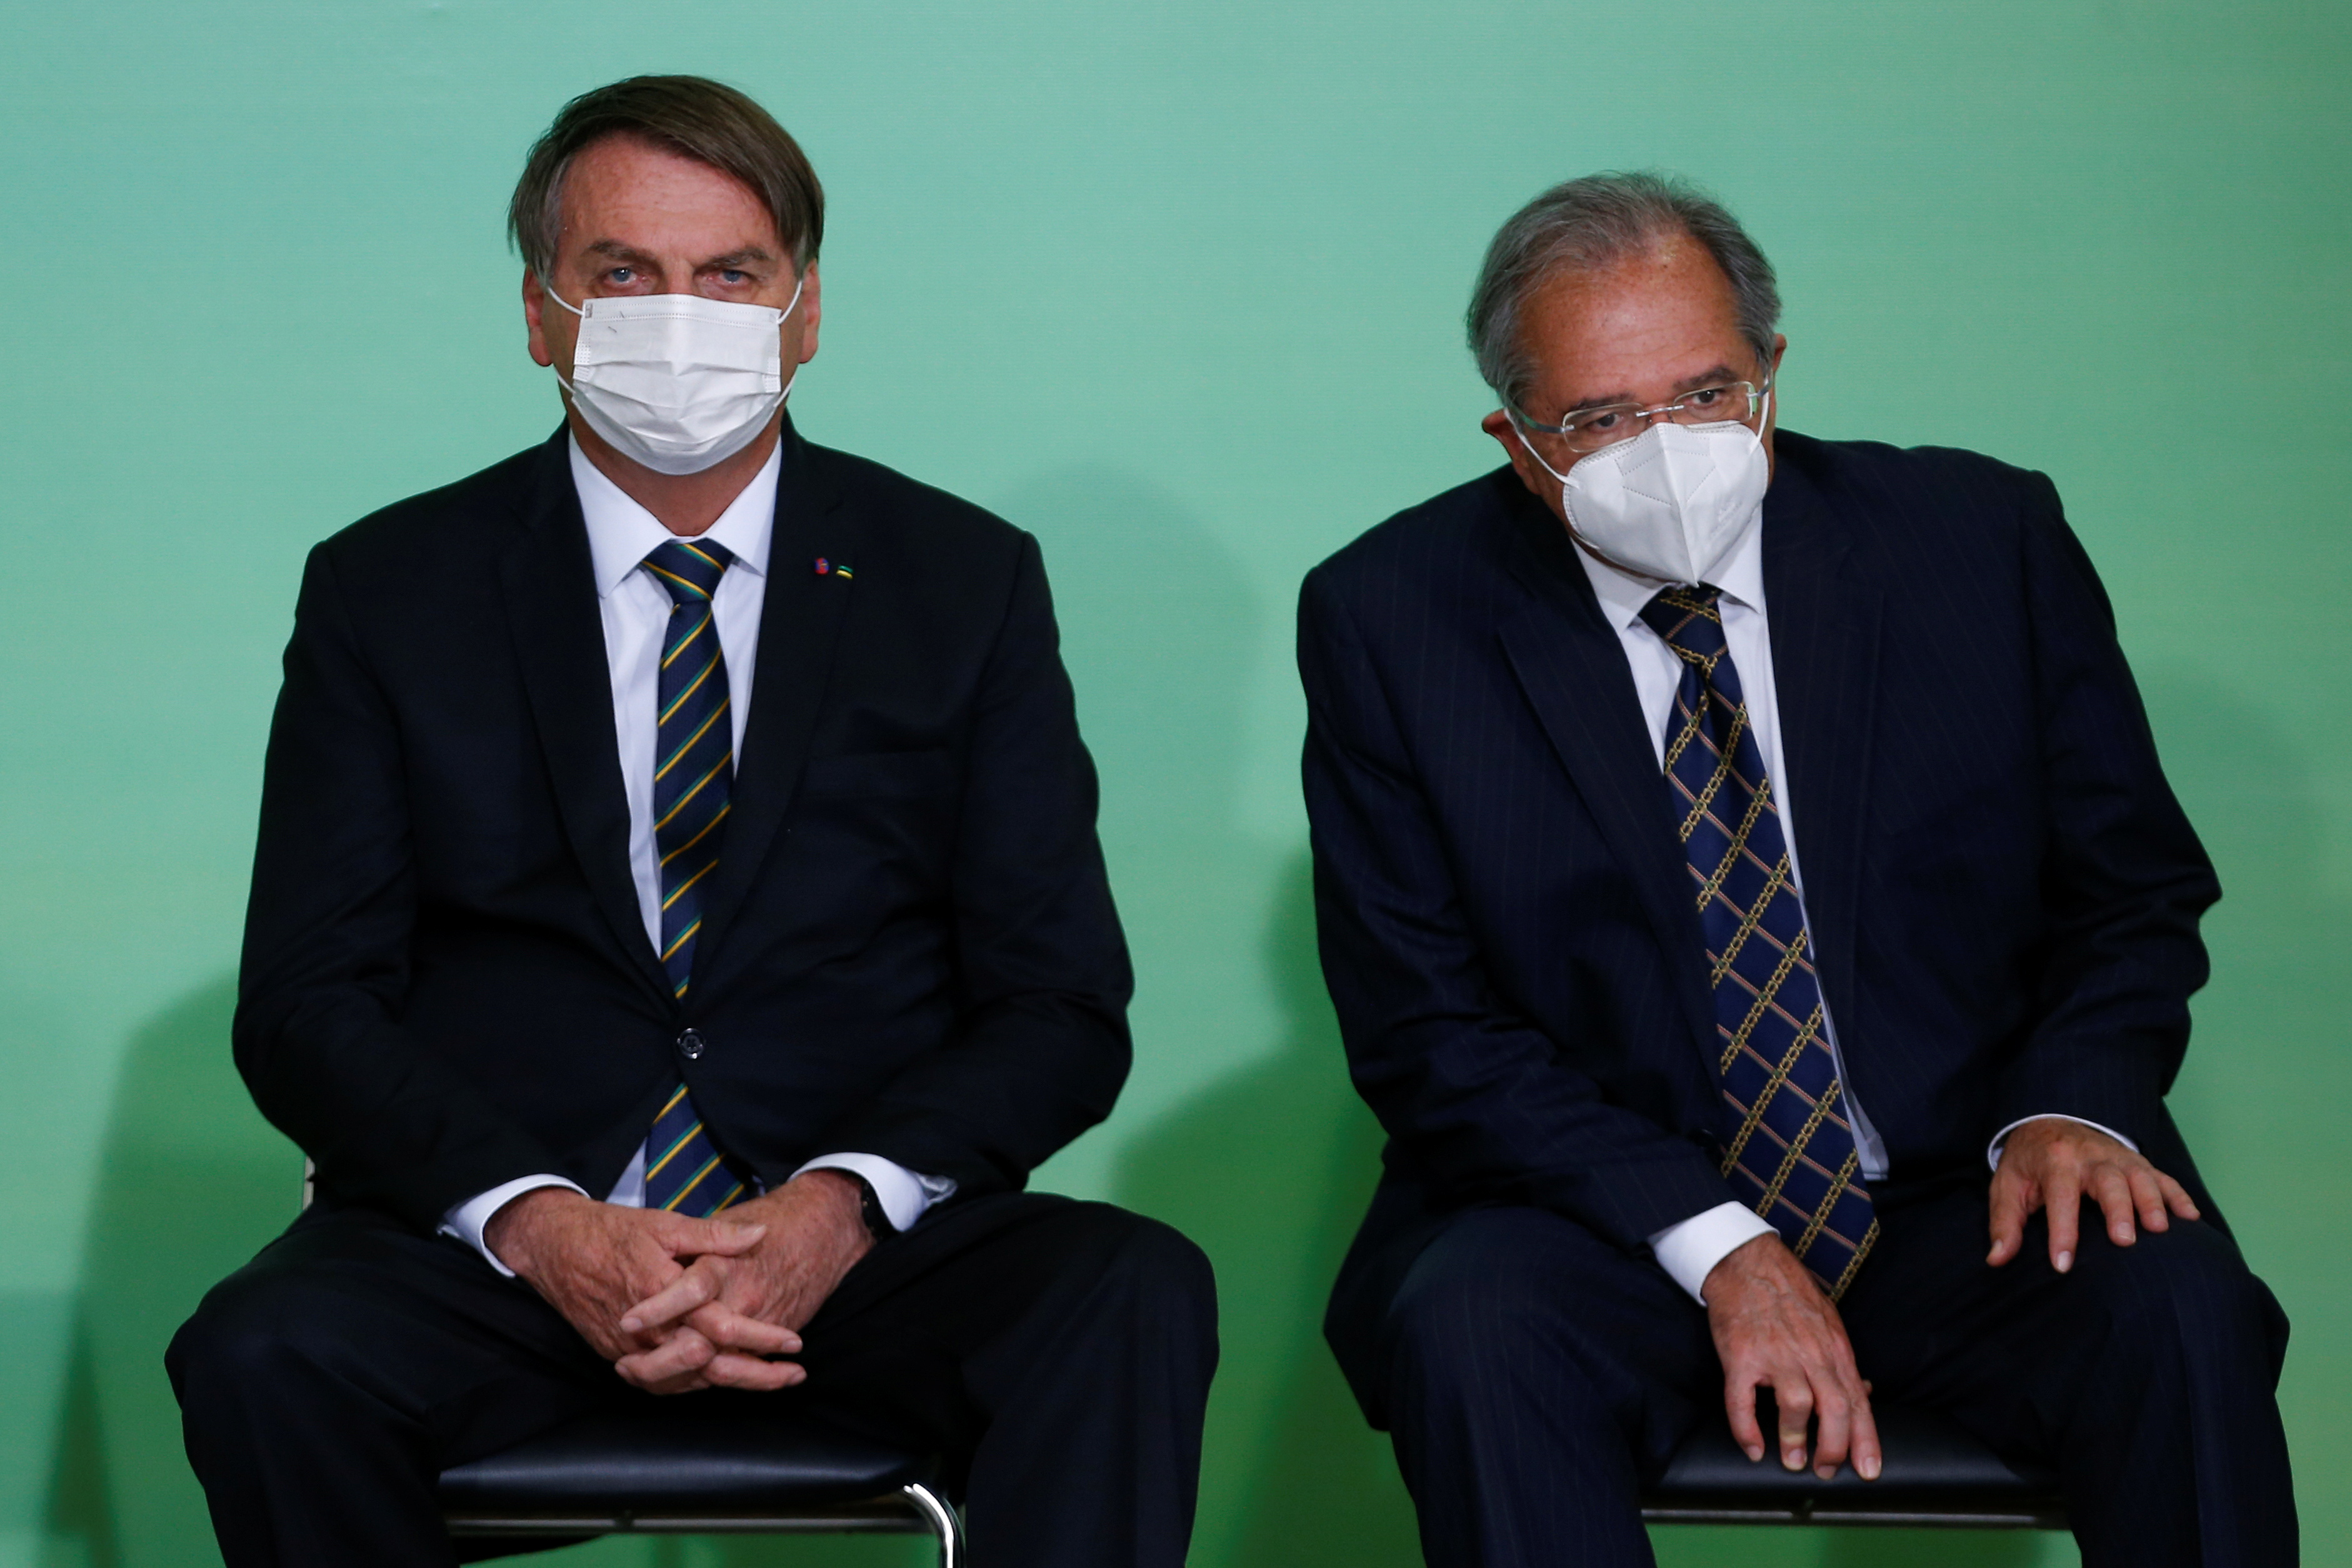 Brazil's President Jair Bolsonaro and Economy Minister Paulo Guedes attend a ceremony at the Planalto Palace, amid the coronavirus disease (COVID-19) pandemic, in Brasilia, Brazil, June 10, 2021. REUTERS/Adriano Machado